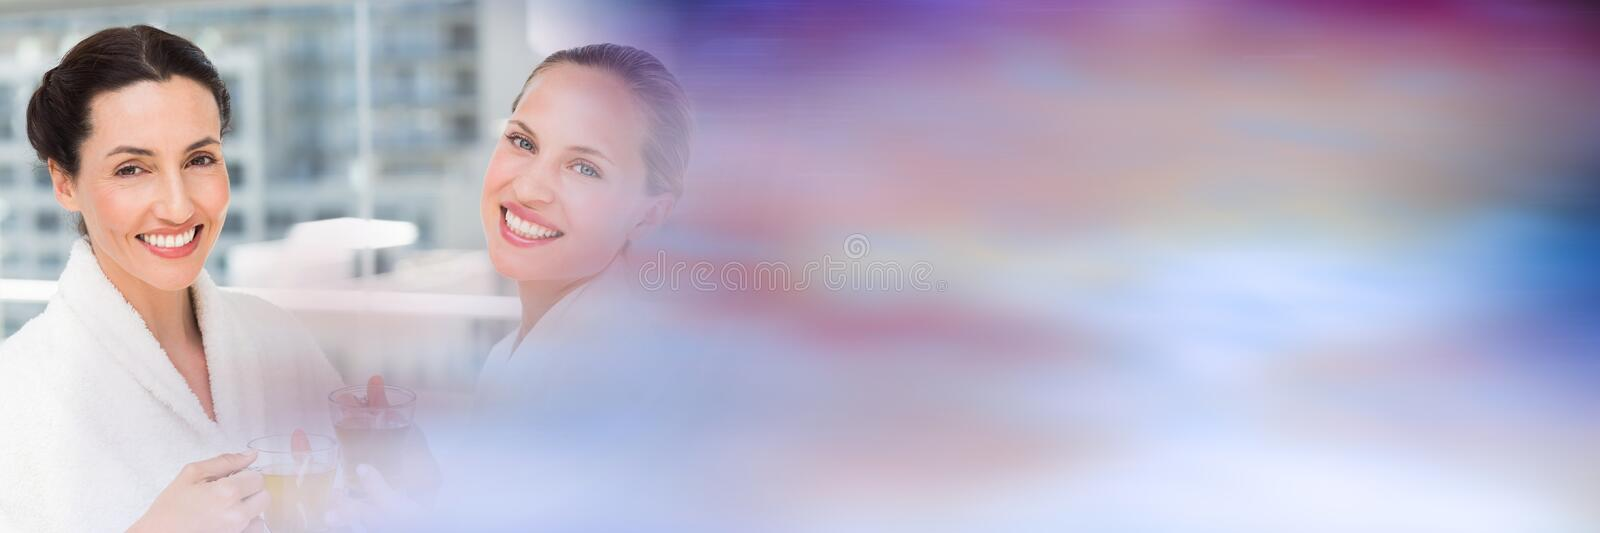 Same sex couple on spa day with blurry purple transition. Digital composite of Same sex couple on spa day with blurry purple transition royalty free stock photo